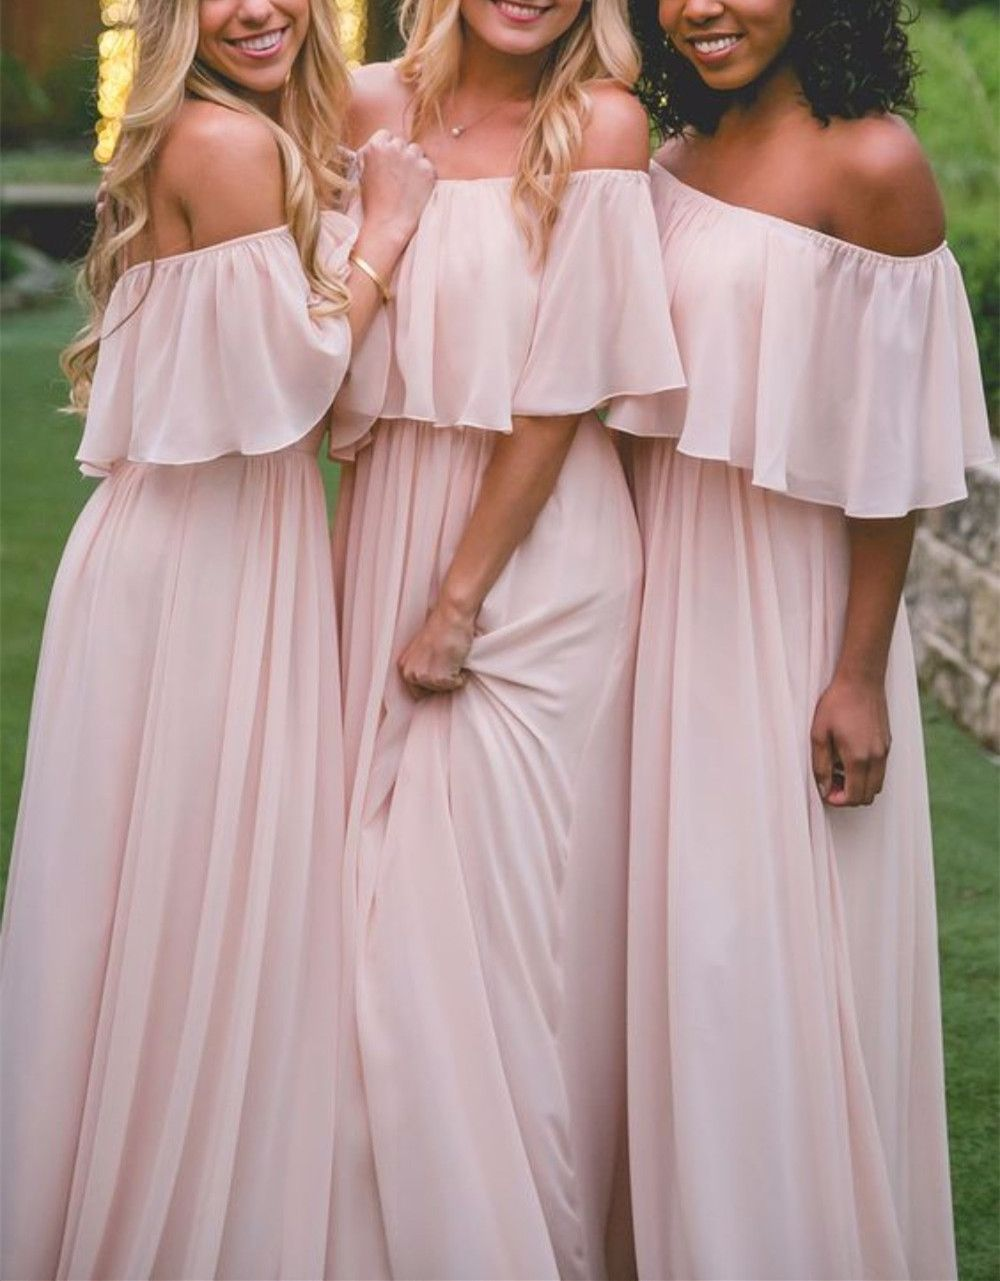 Off the shoulder pink chiffon bridesmaid dress from hot lady